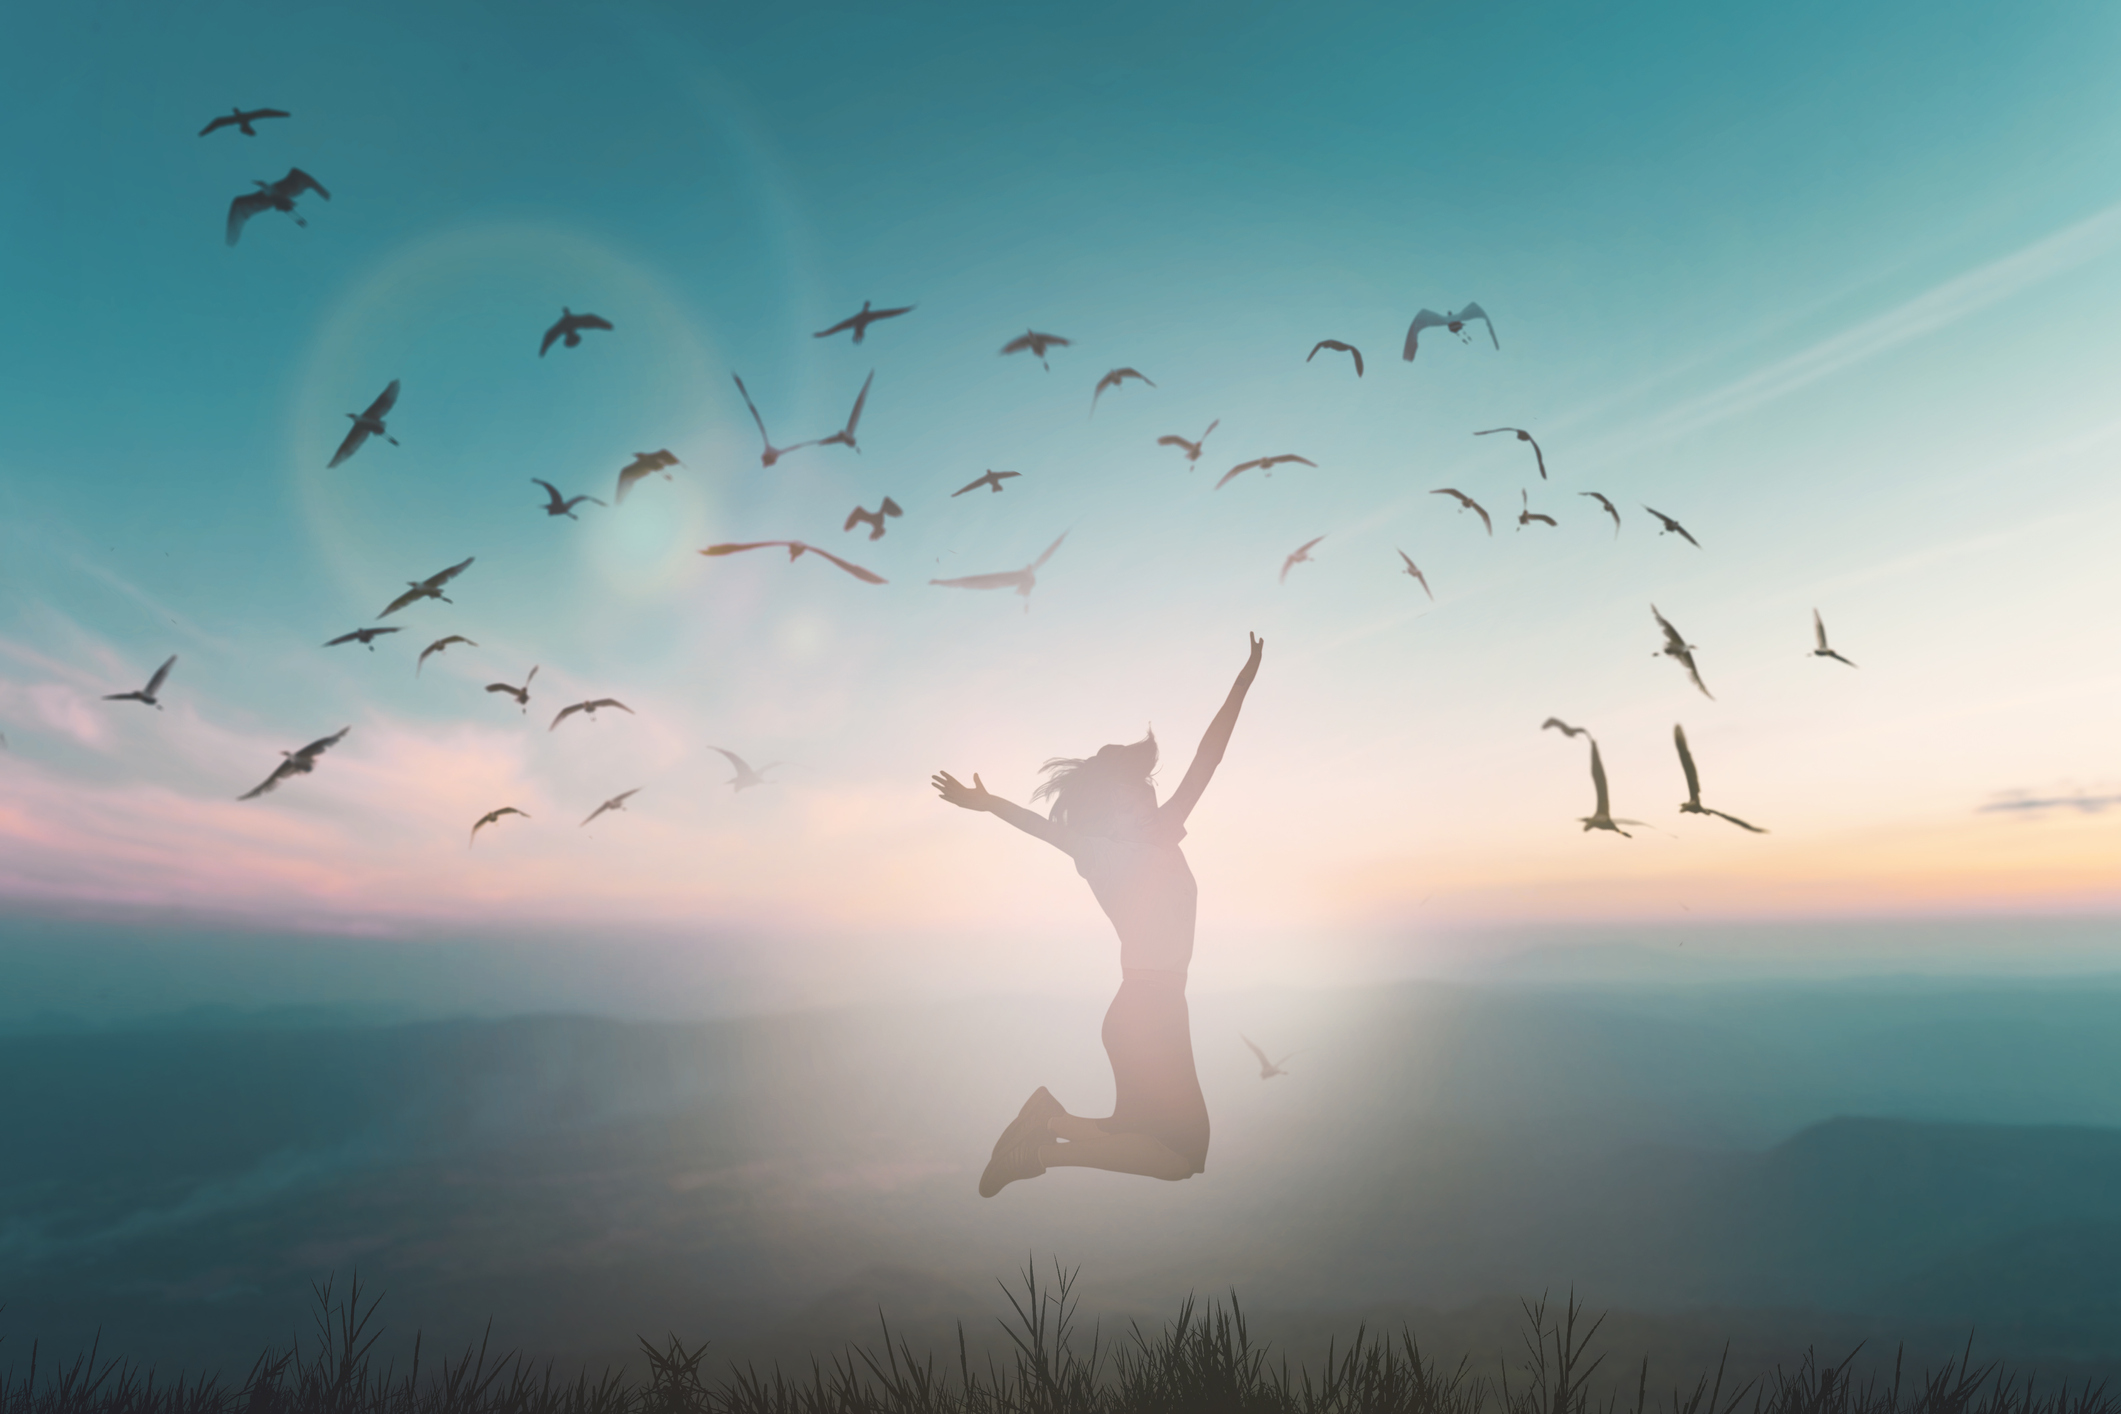 Silhouette of woman leaping freely in meadow amid flock of birds.